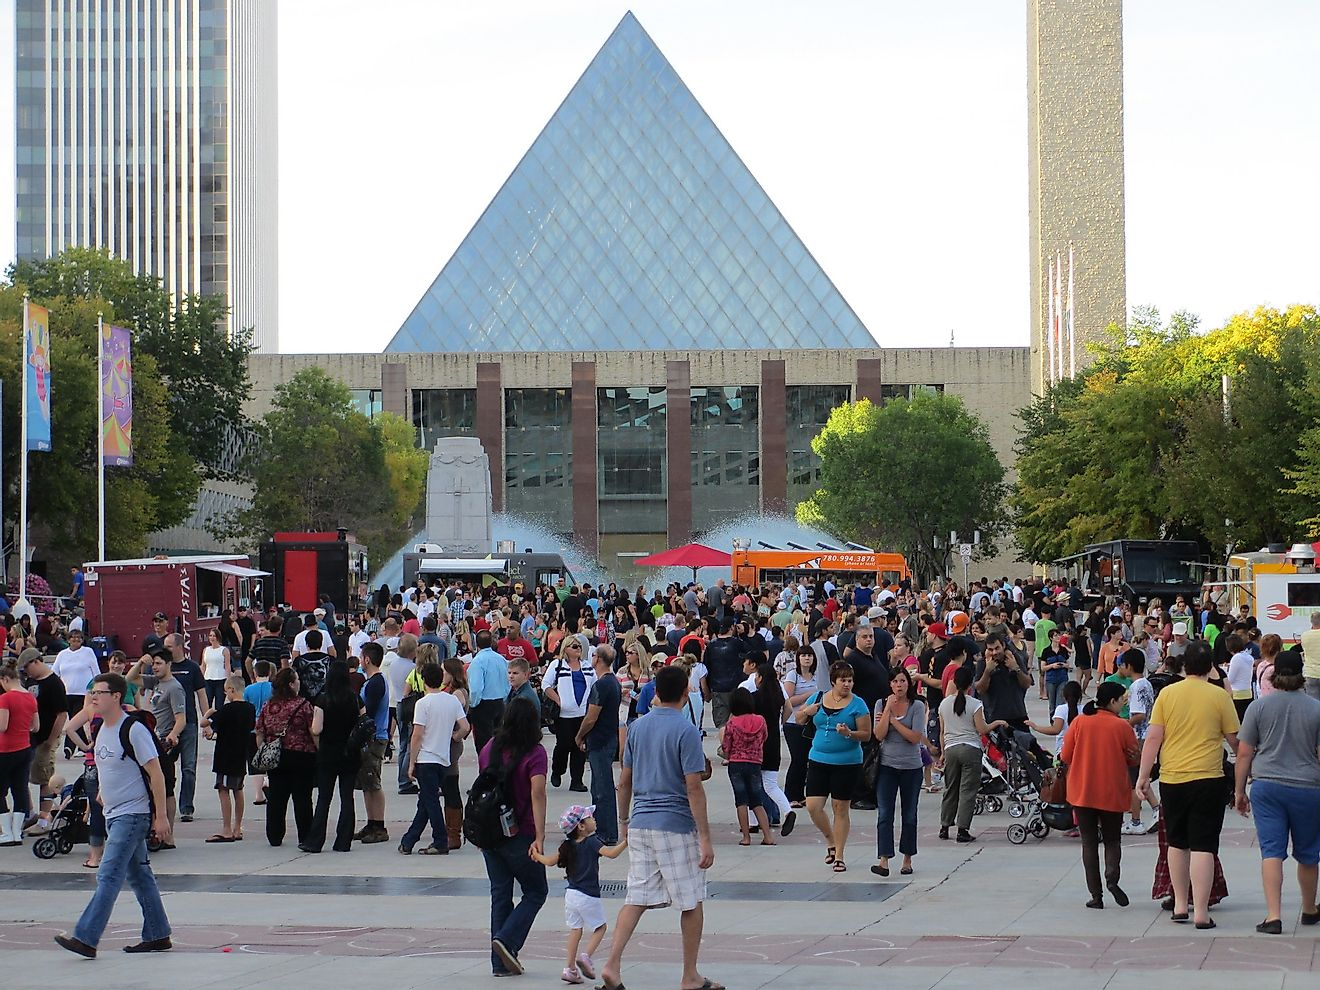 The bustling Churchill Square in Edmonton. Image credit: Mack Male/Flickr.com